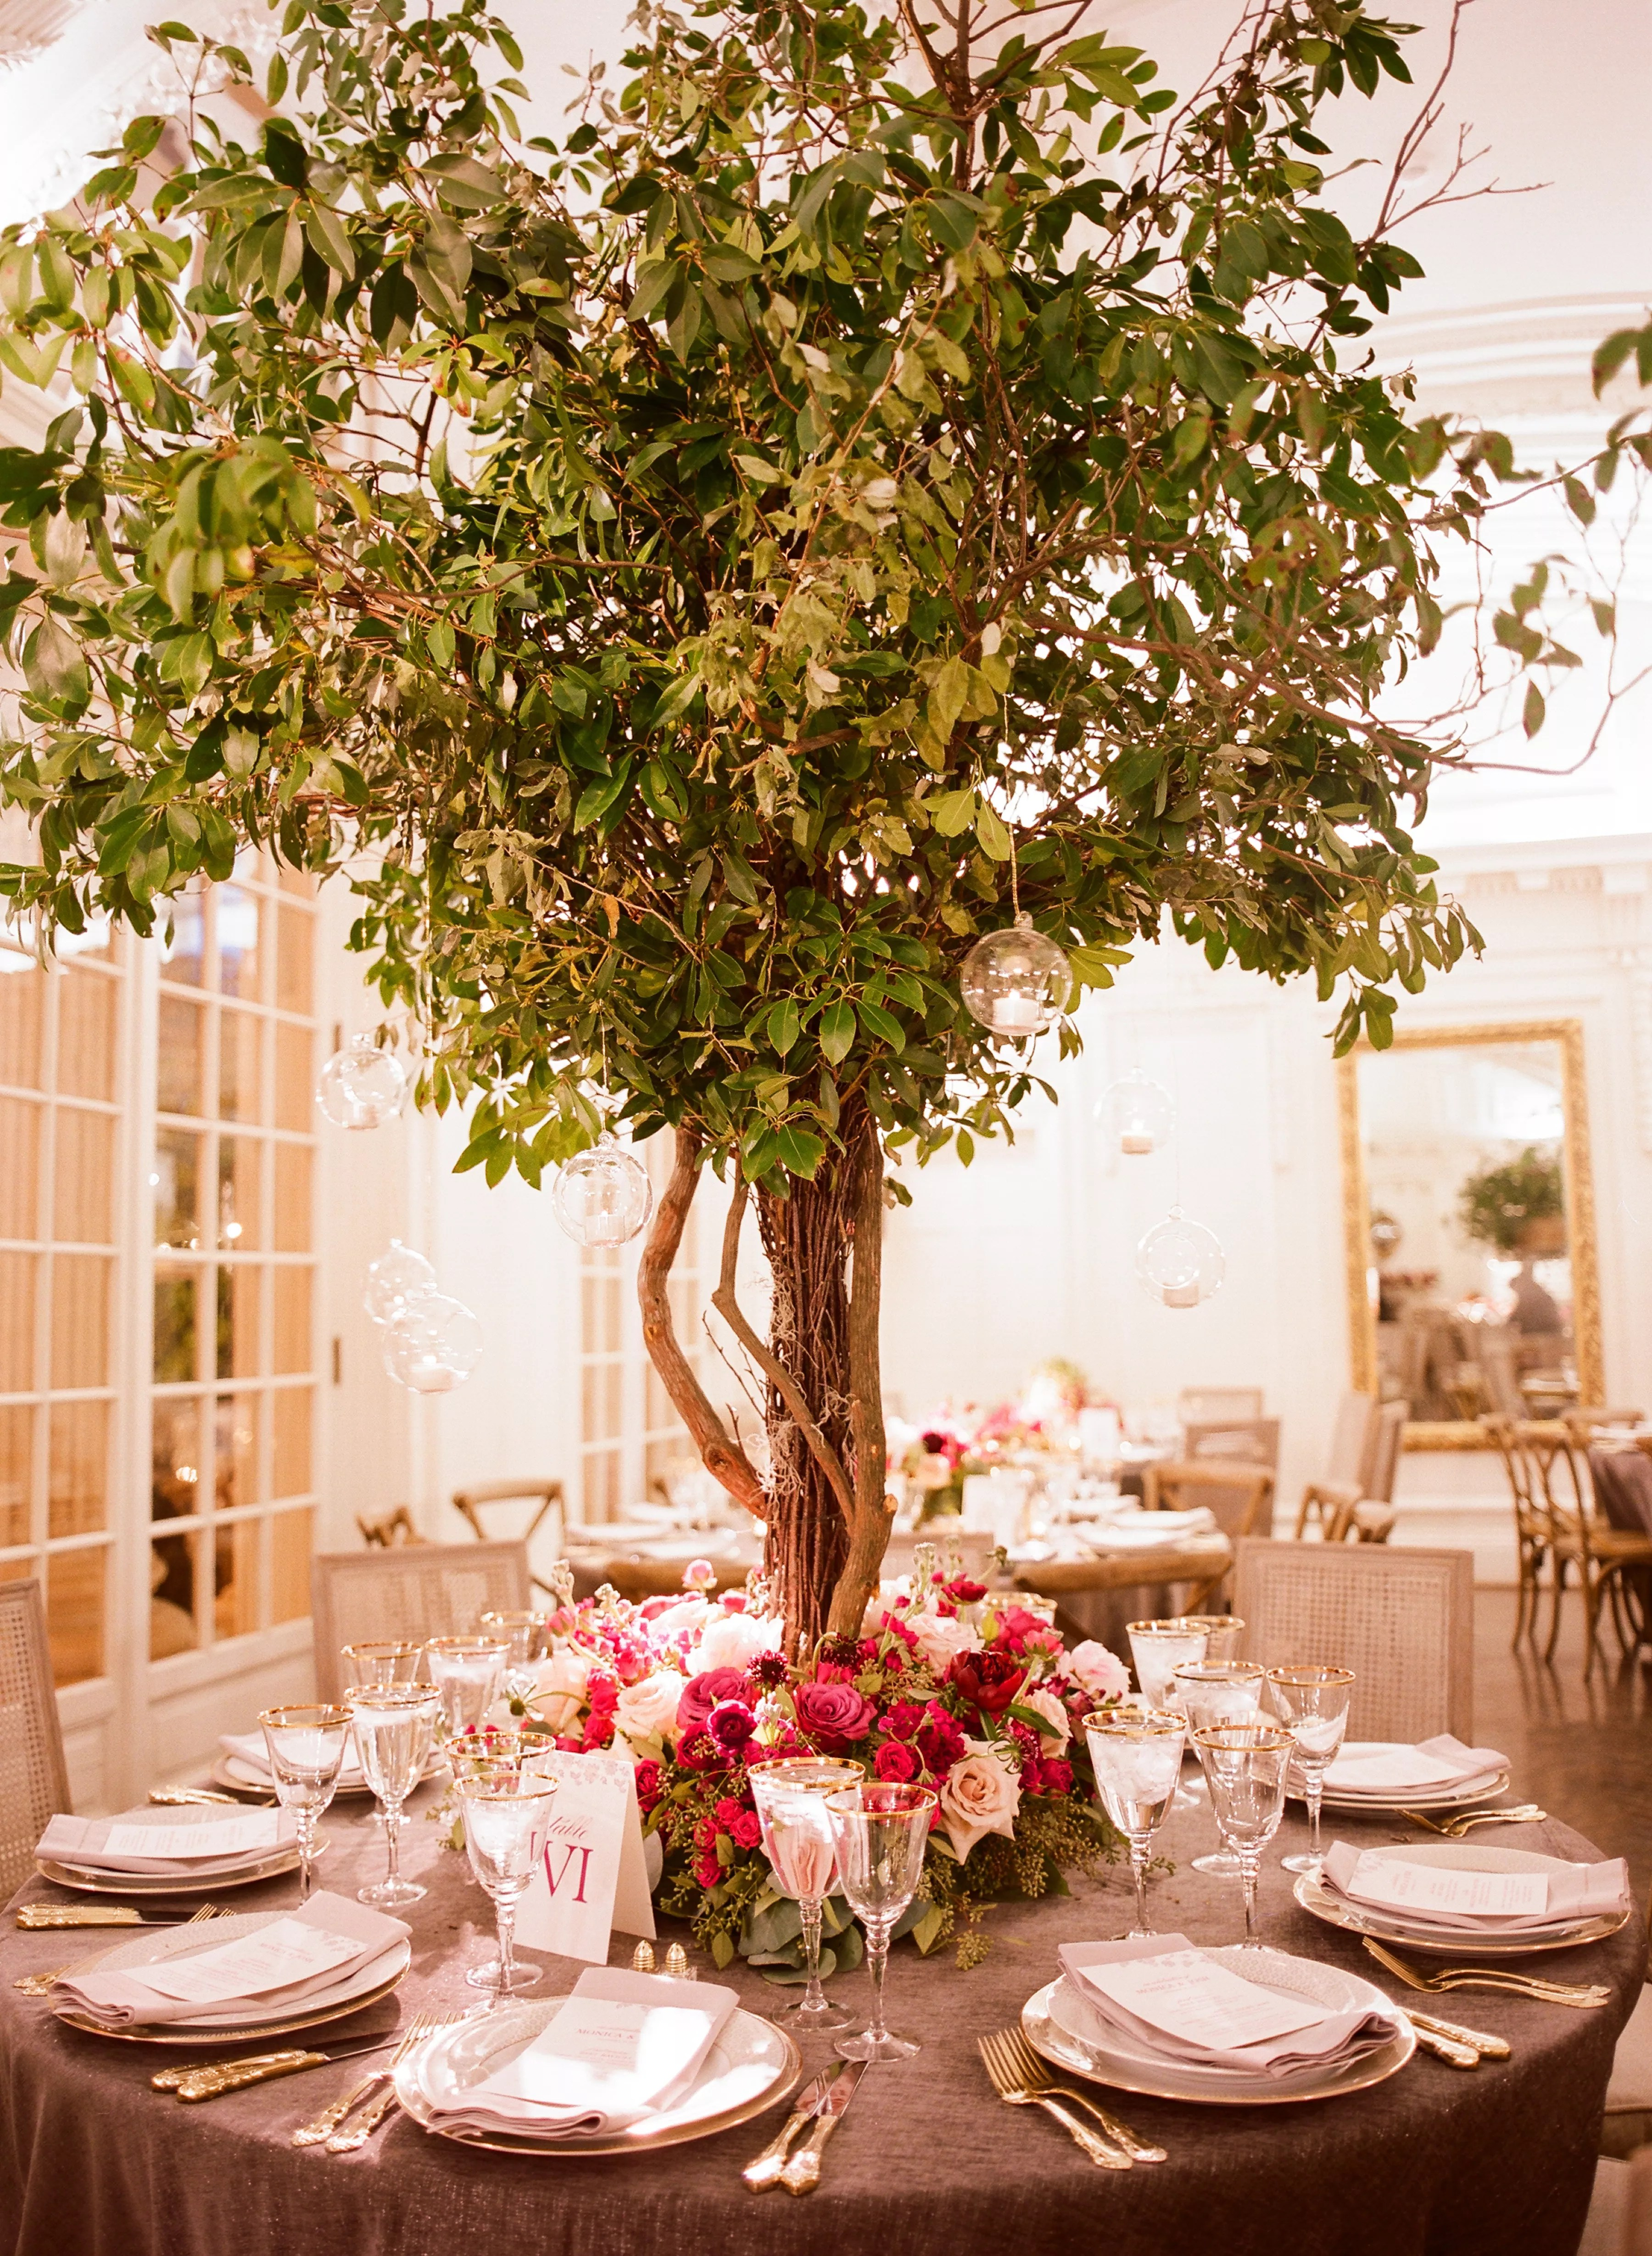 Whimsical GardenInspired Tree Centerpieces